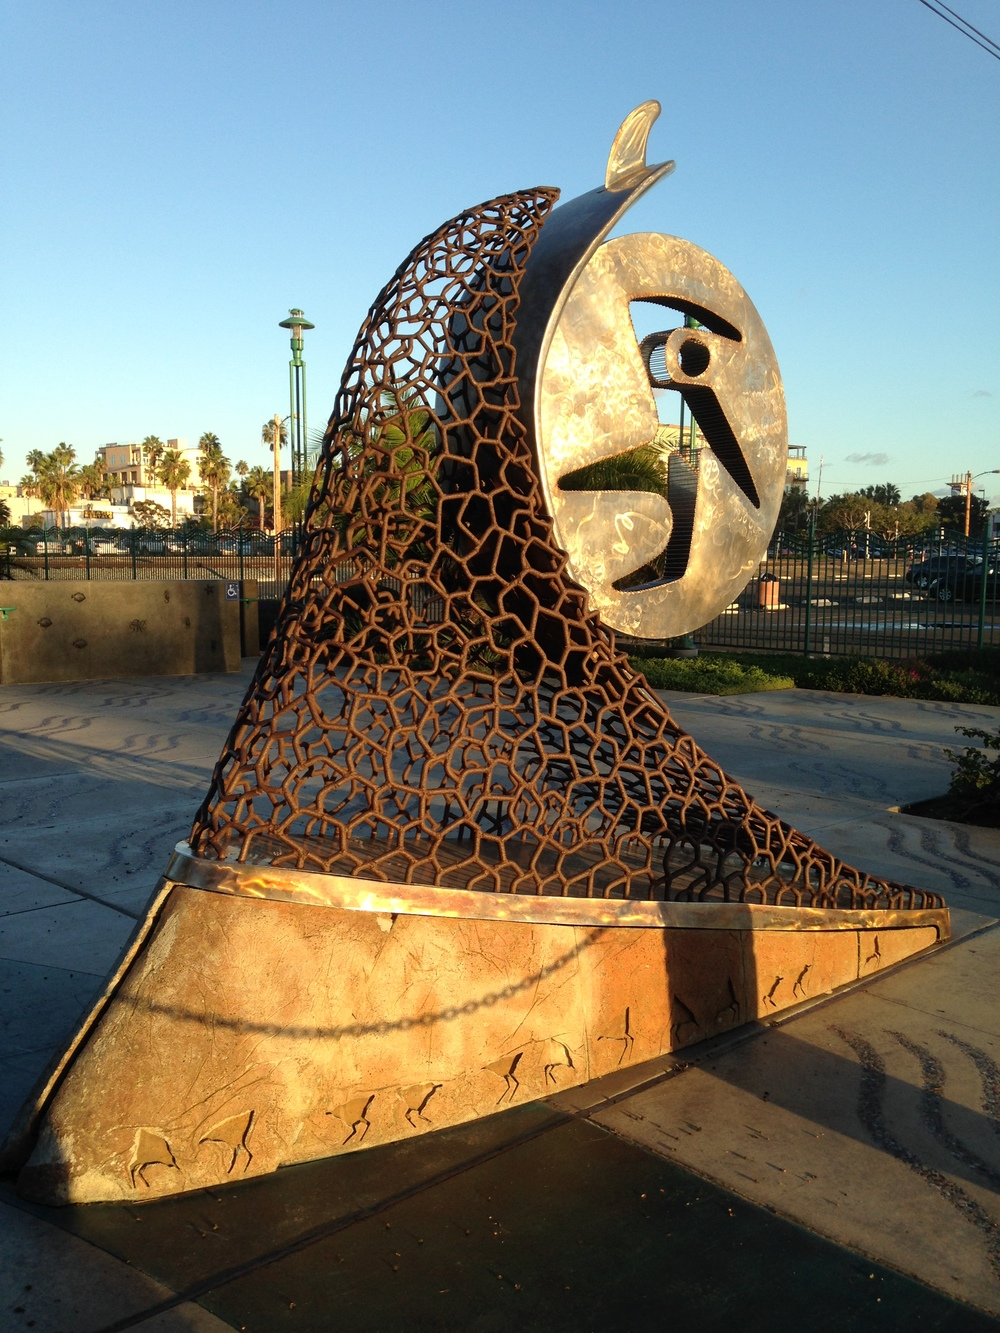 This surfing sculpture is located near the pier.